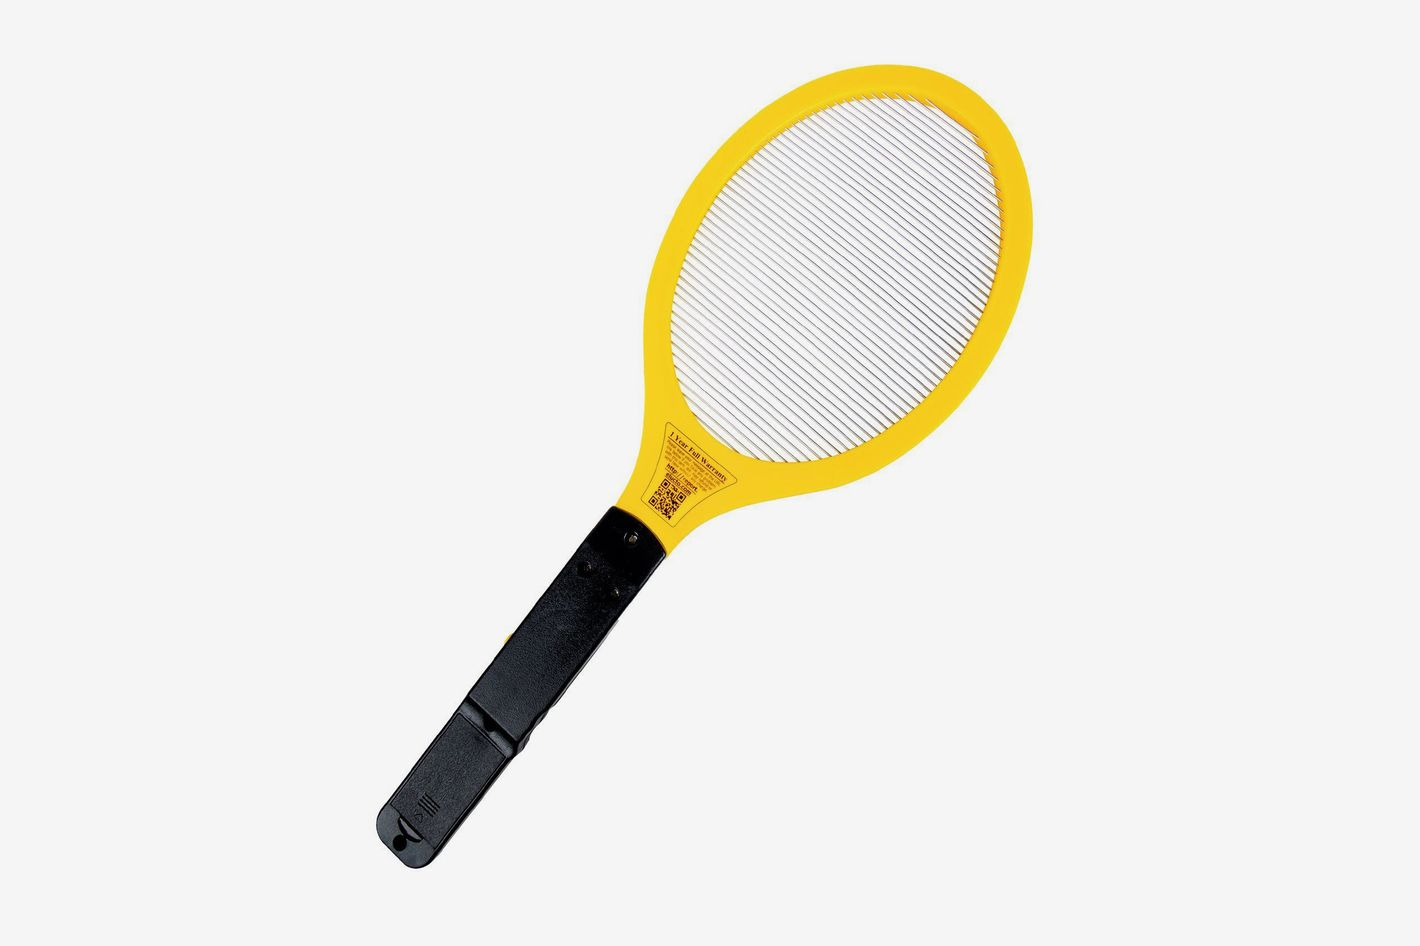 Elucto Large Electric Bug Zapper Fly Swatter Zap Mosquito Best for Indoor and Outdoor Pest Control